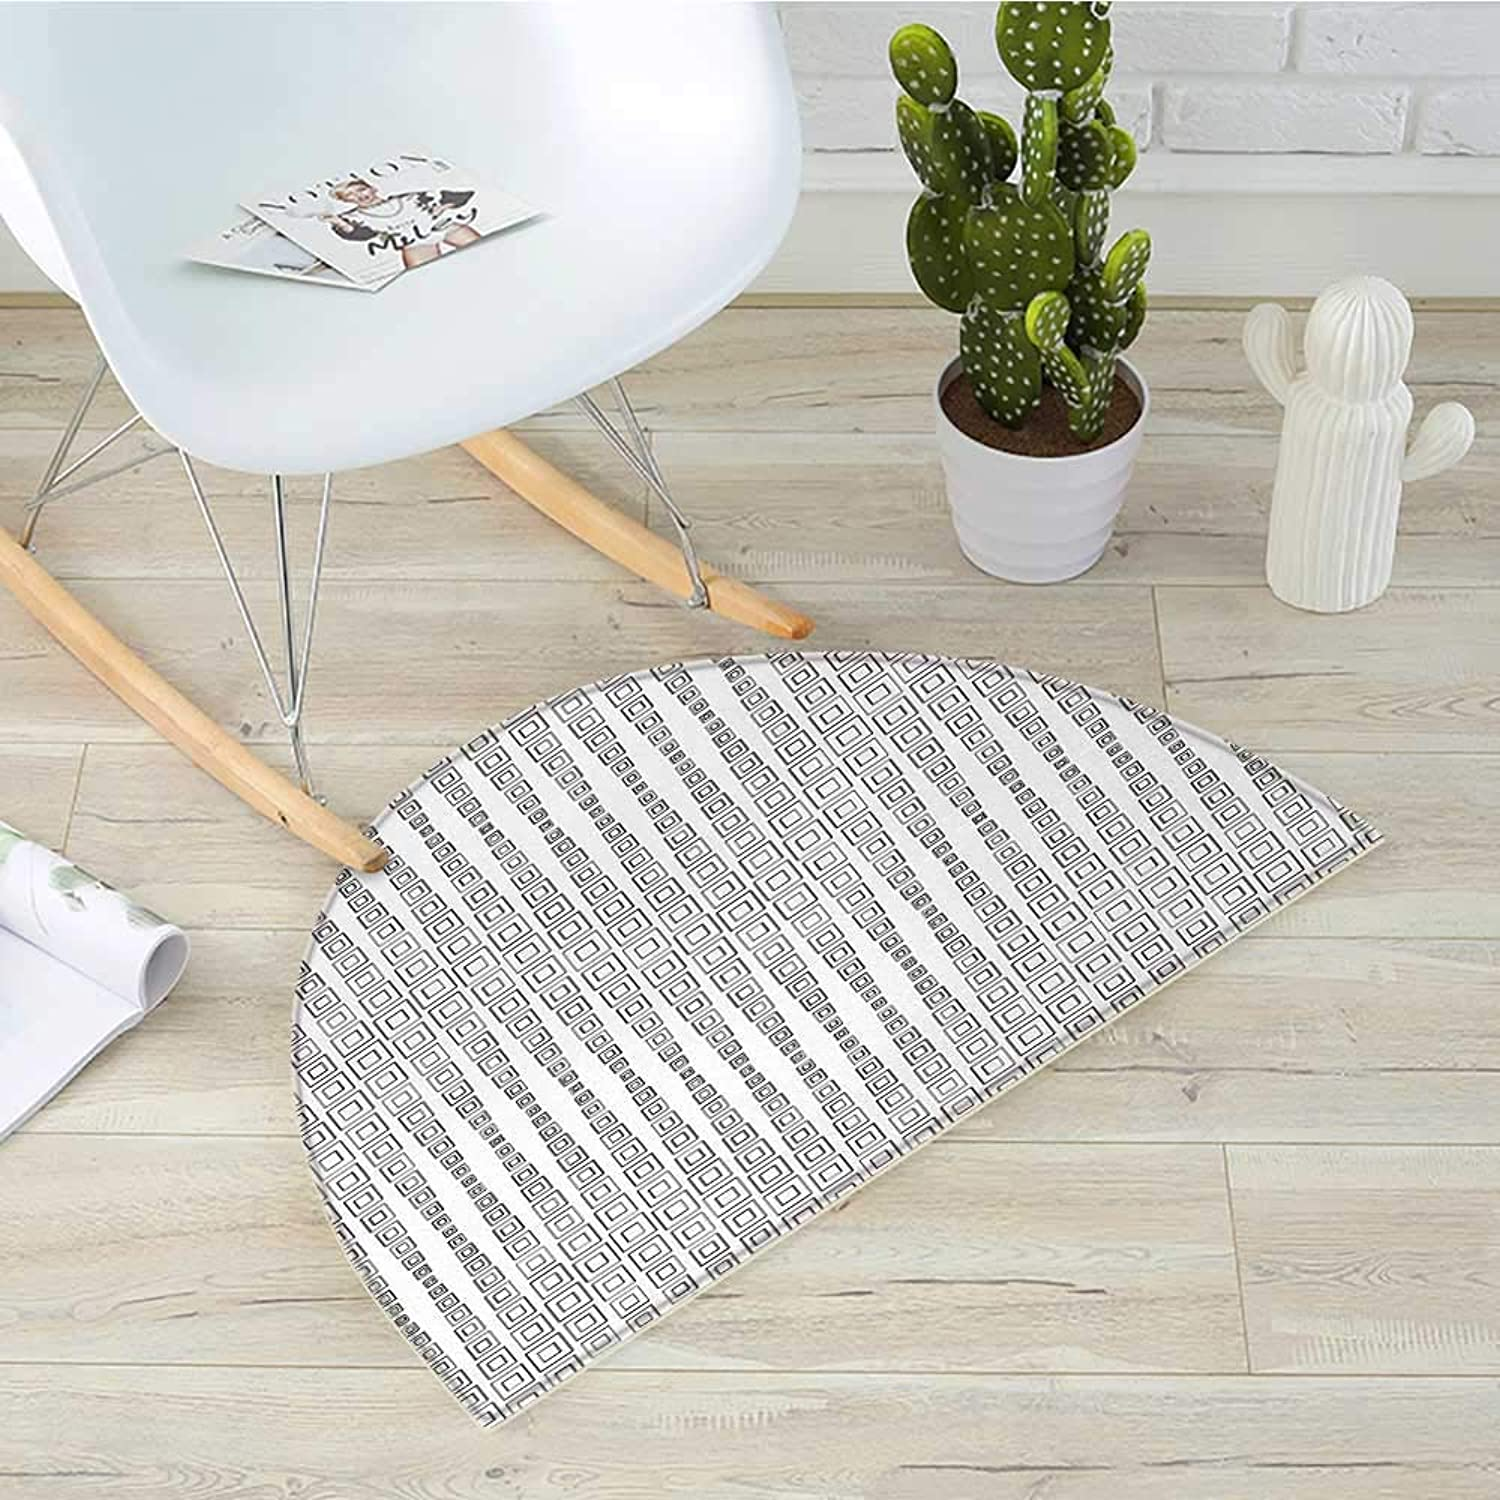 Modern Semicircle Doormat Minimalist Inner Squares Forming Fractal Figures Quadrate Abstract Geometric Design Halfmoon doormats H 19.7  xD 31.5  Grey White